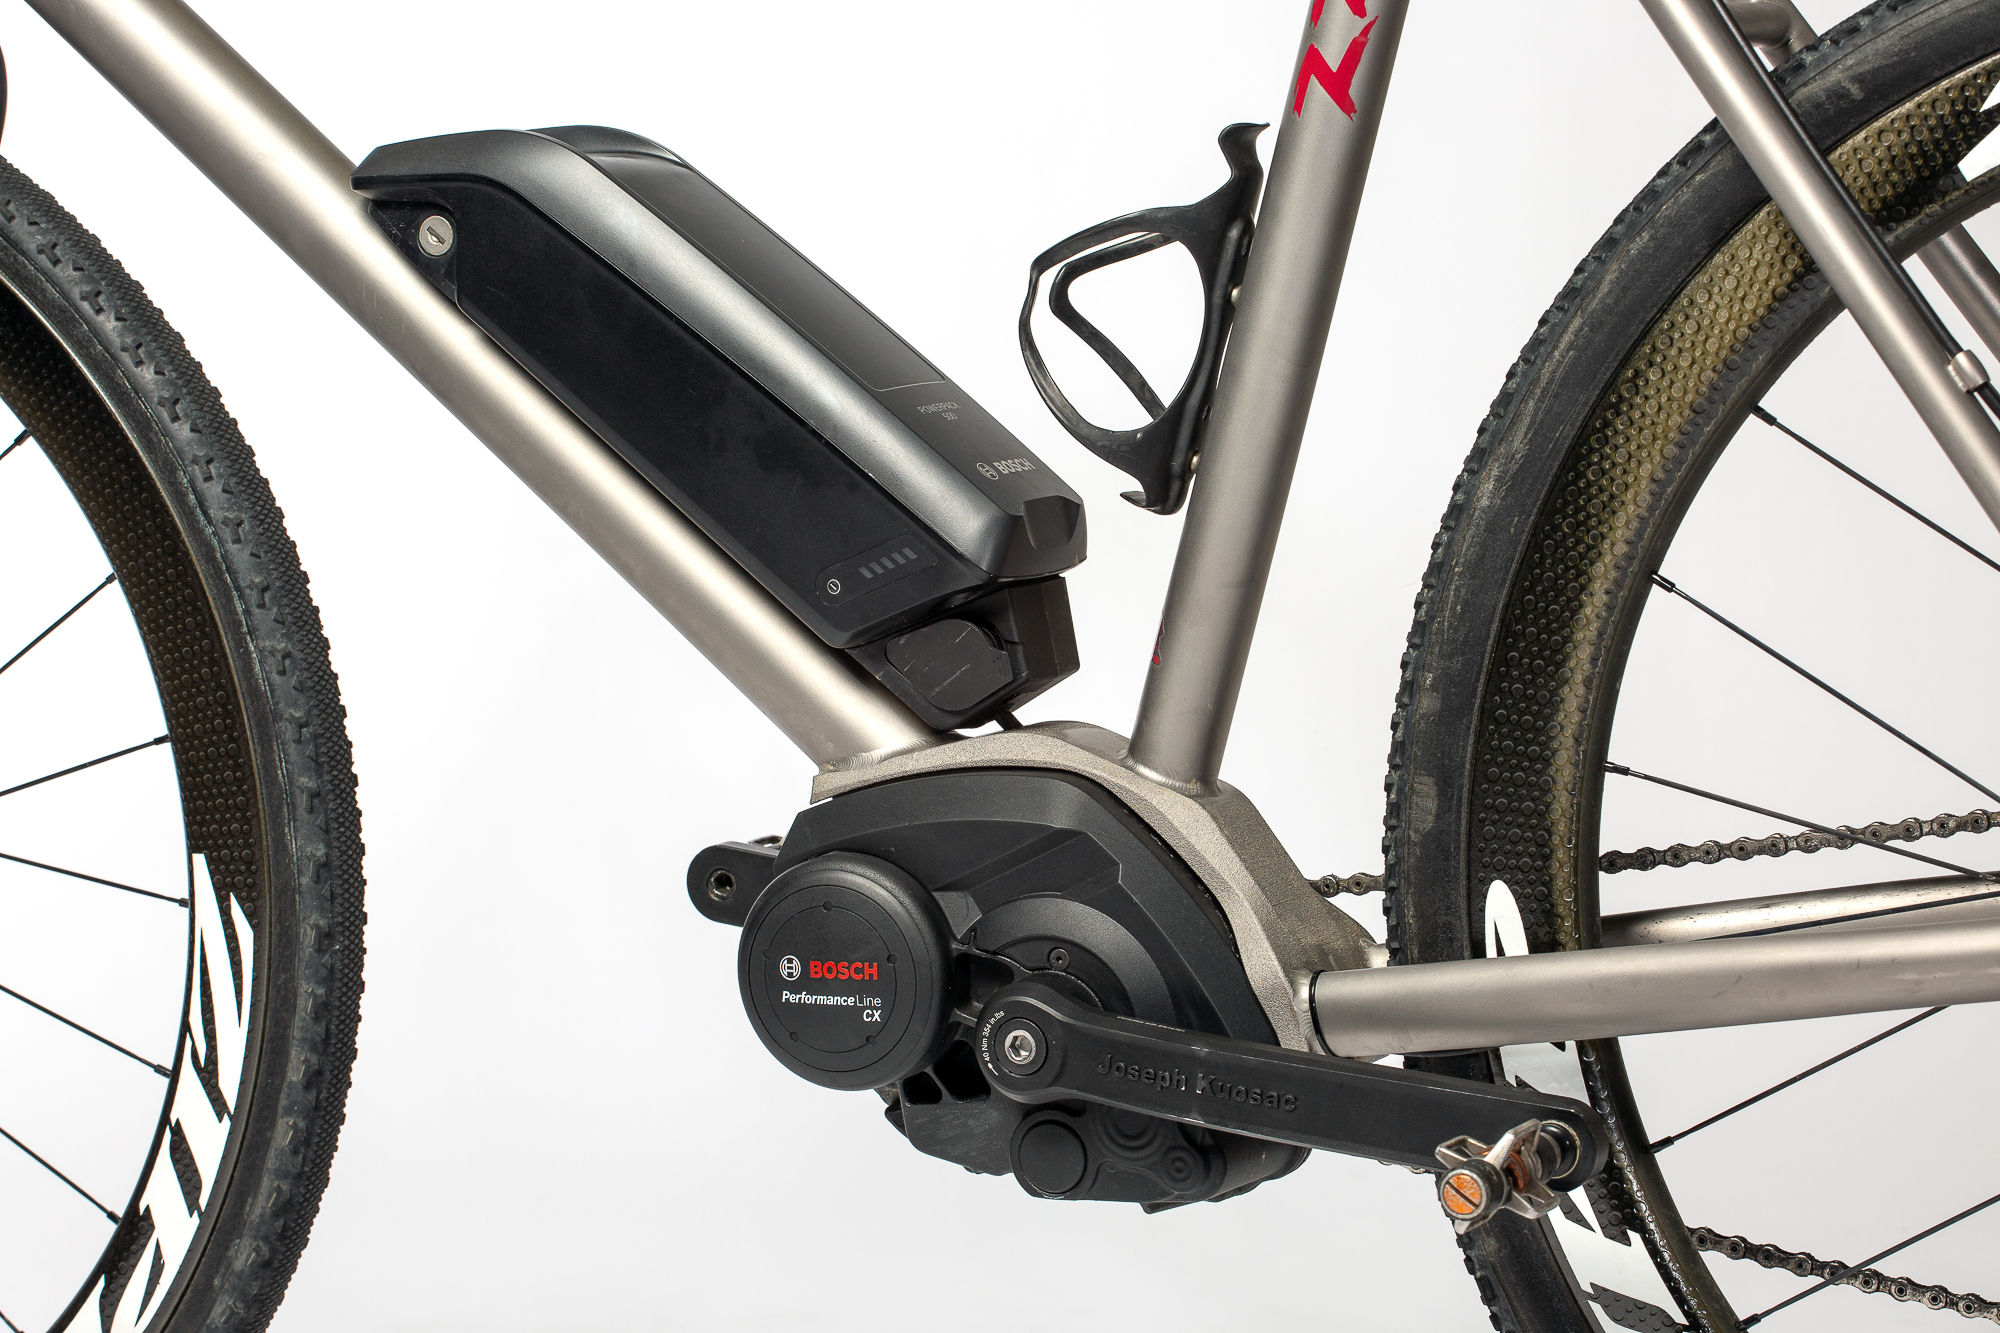 Bosch E-bike Battery Rental - 500Wh